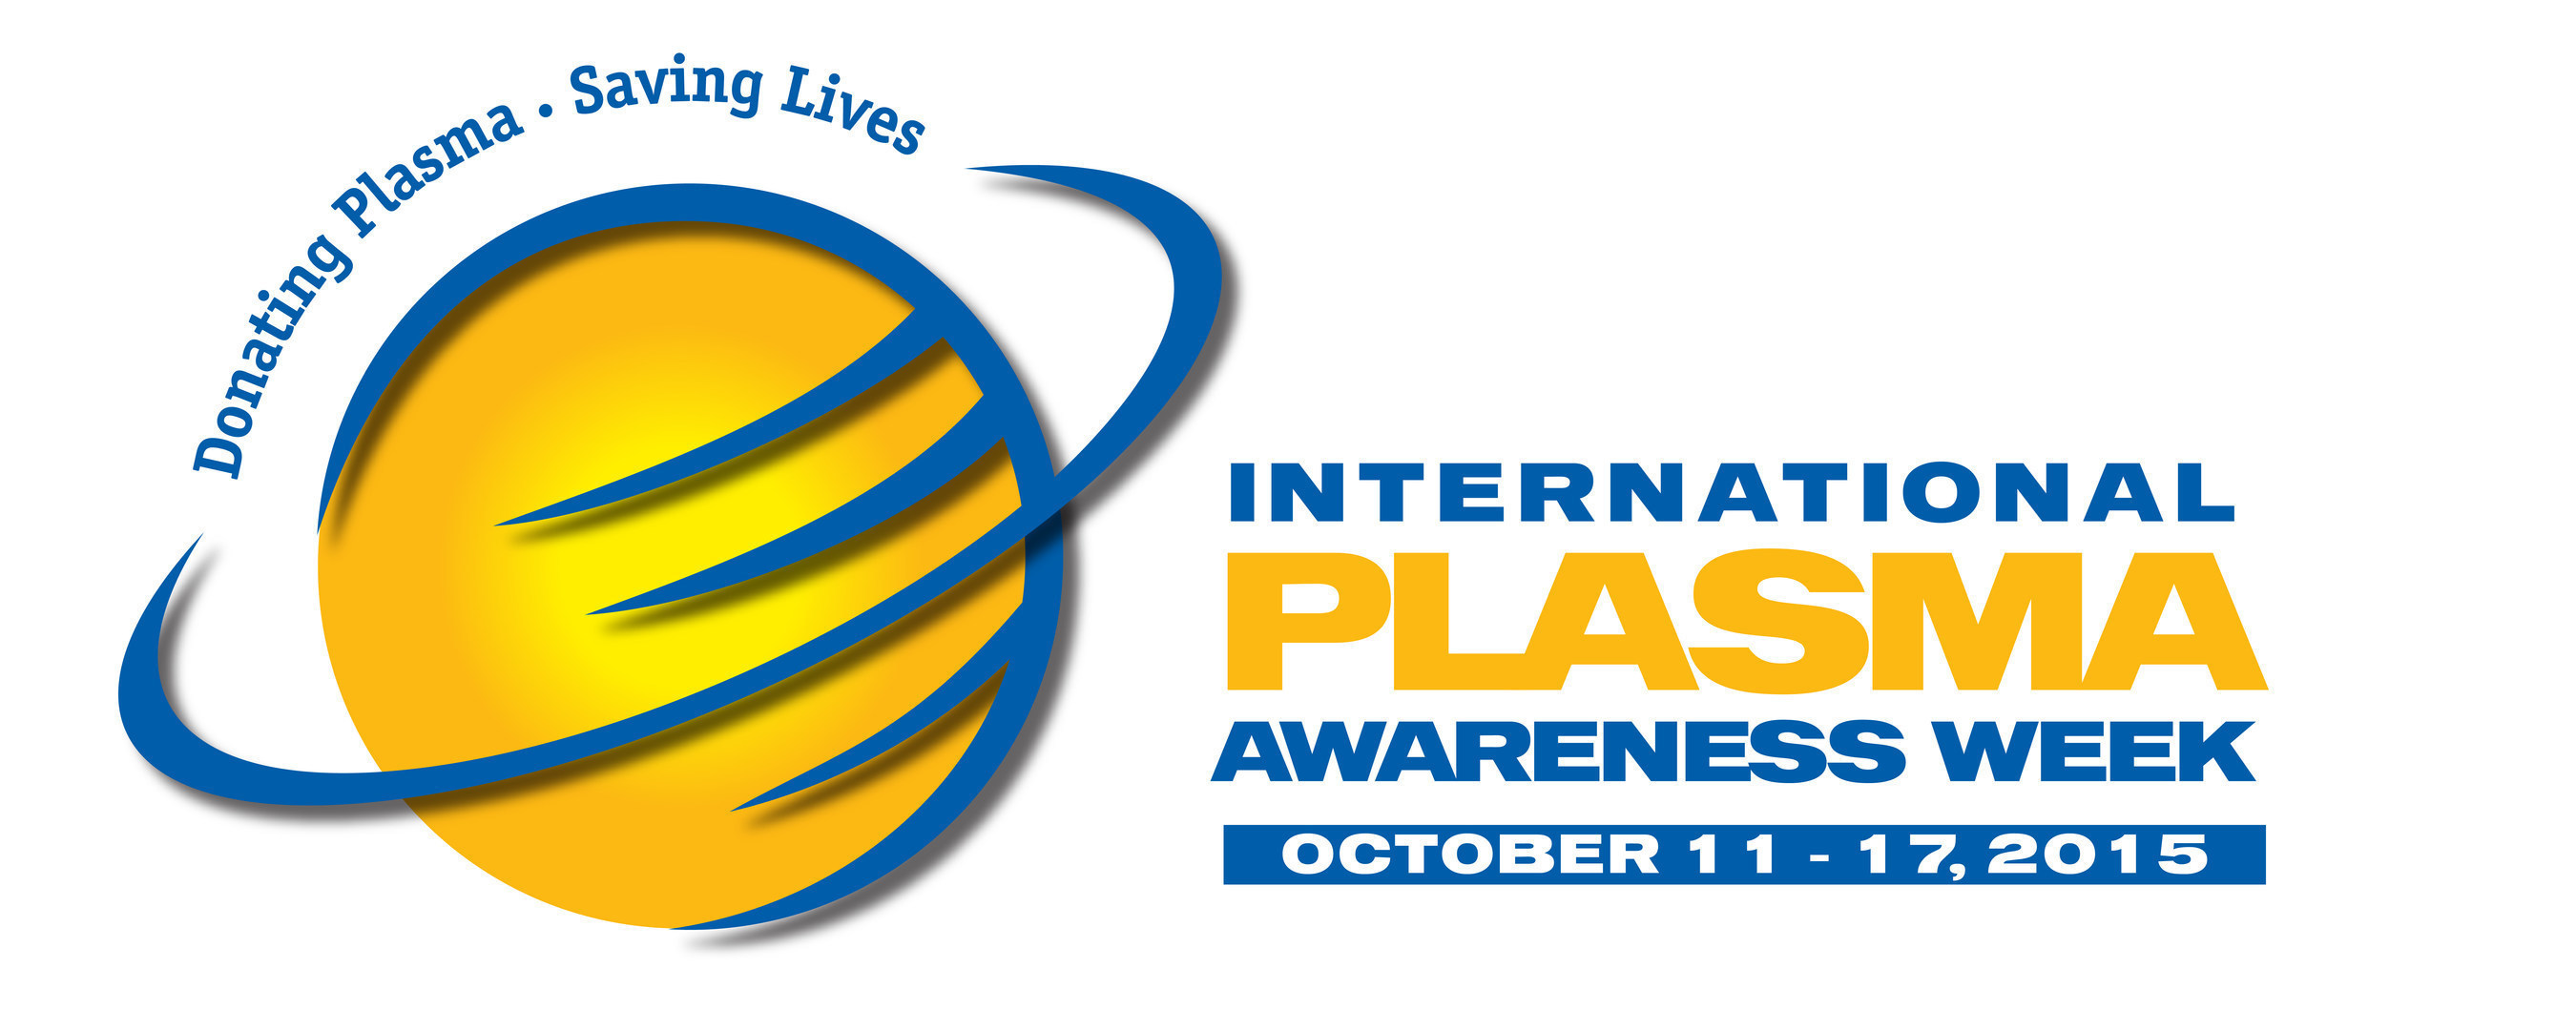 Celebrate International Plasma Awareness Week (IPAW) October 11-17! To find out more about plasma donation and ...